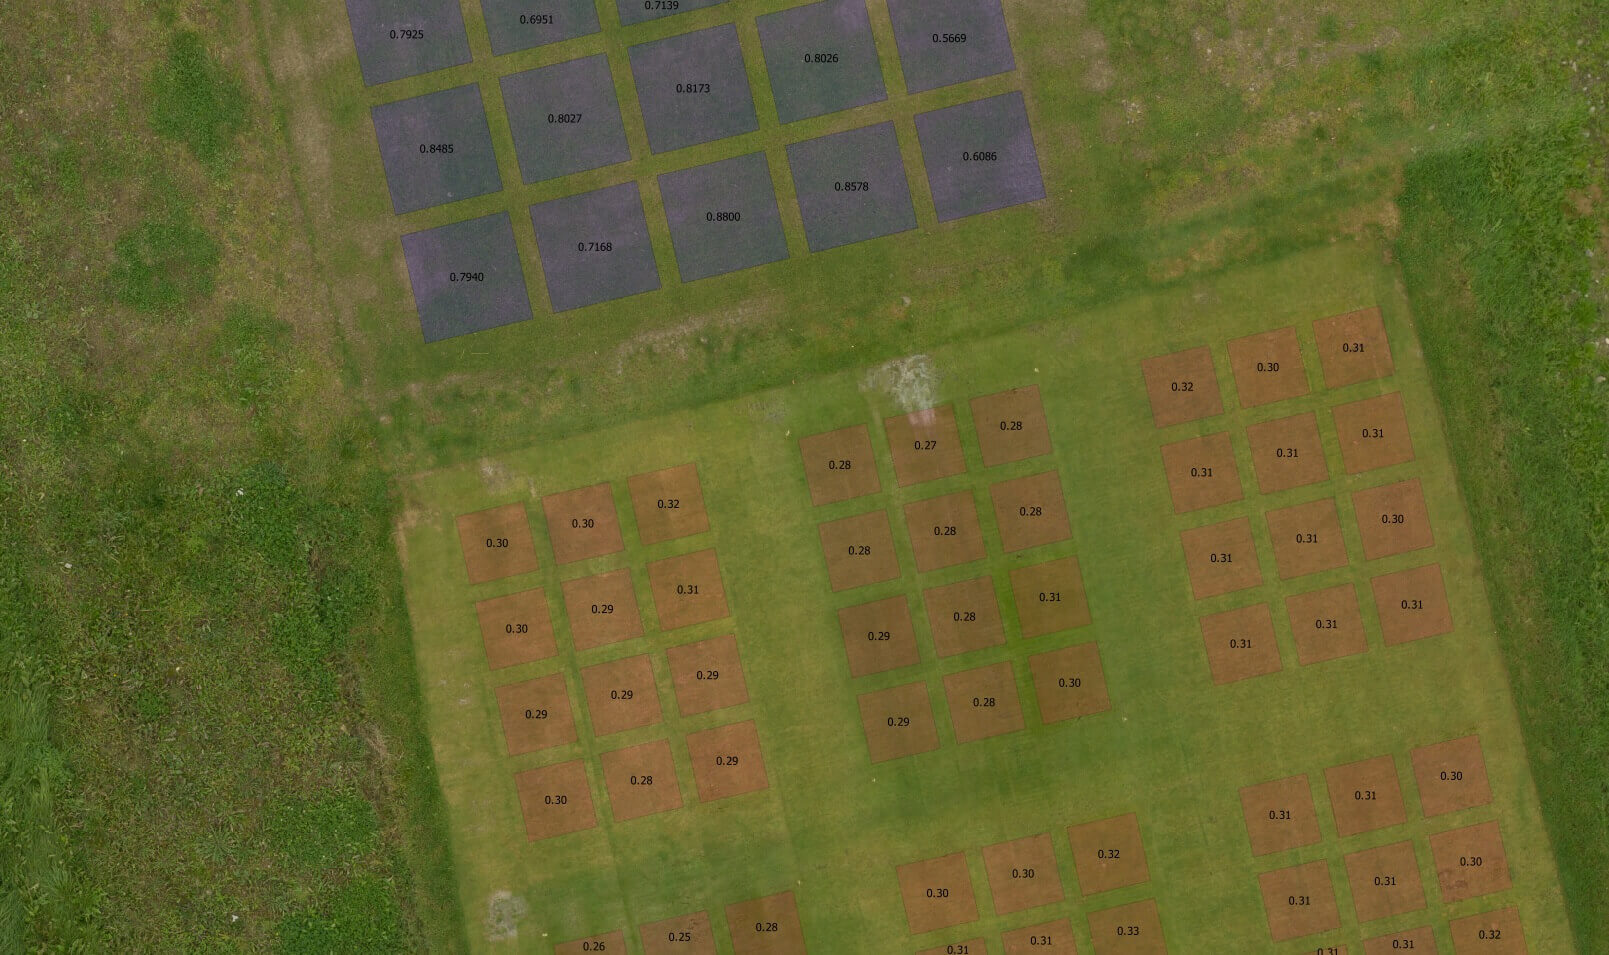 Aerial image analysis